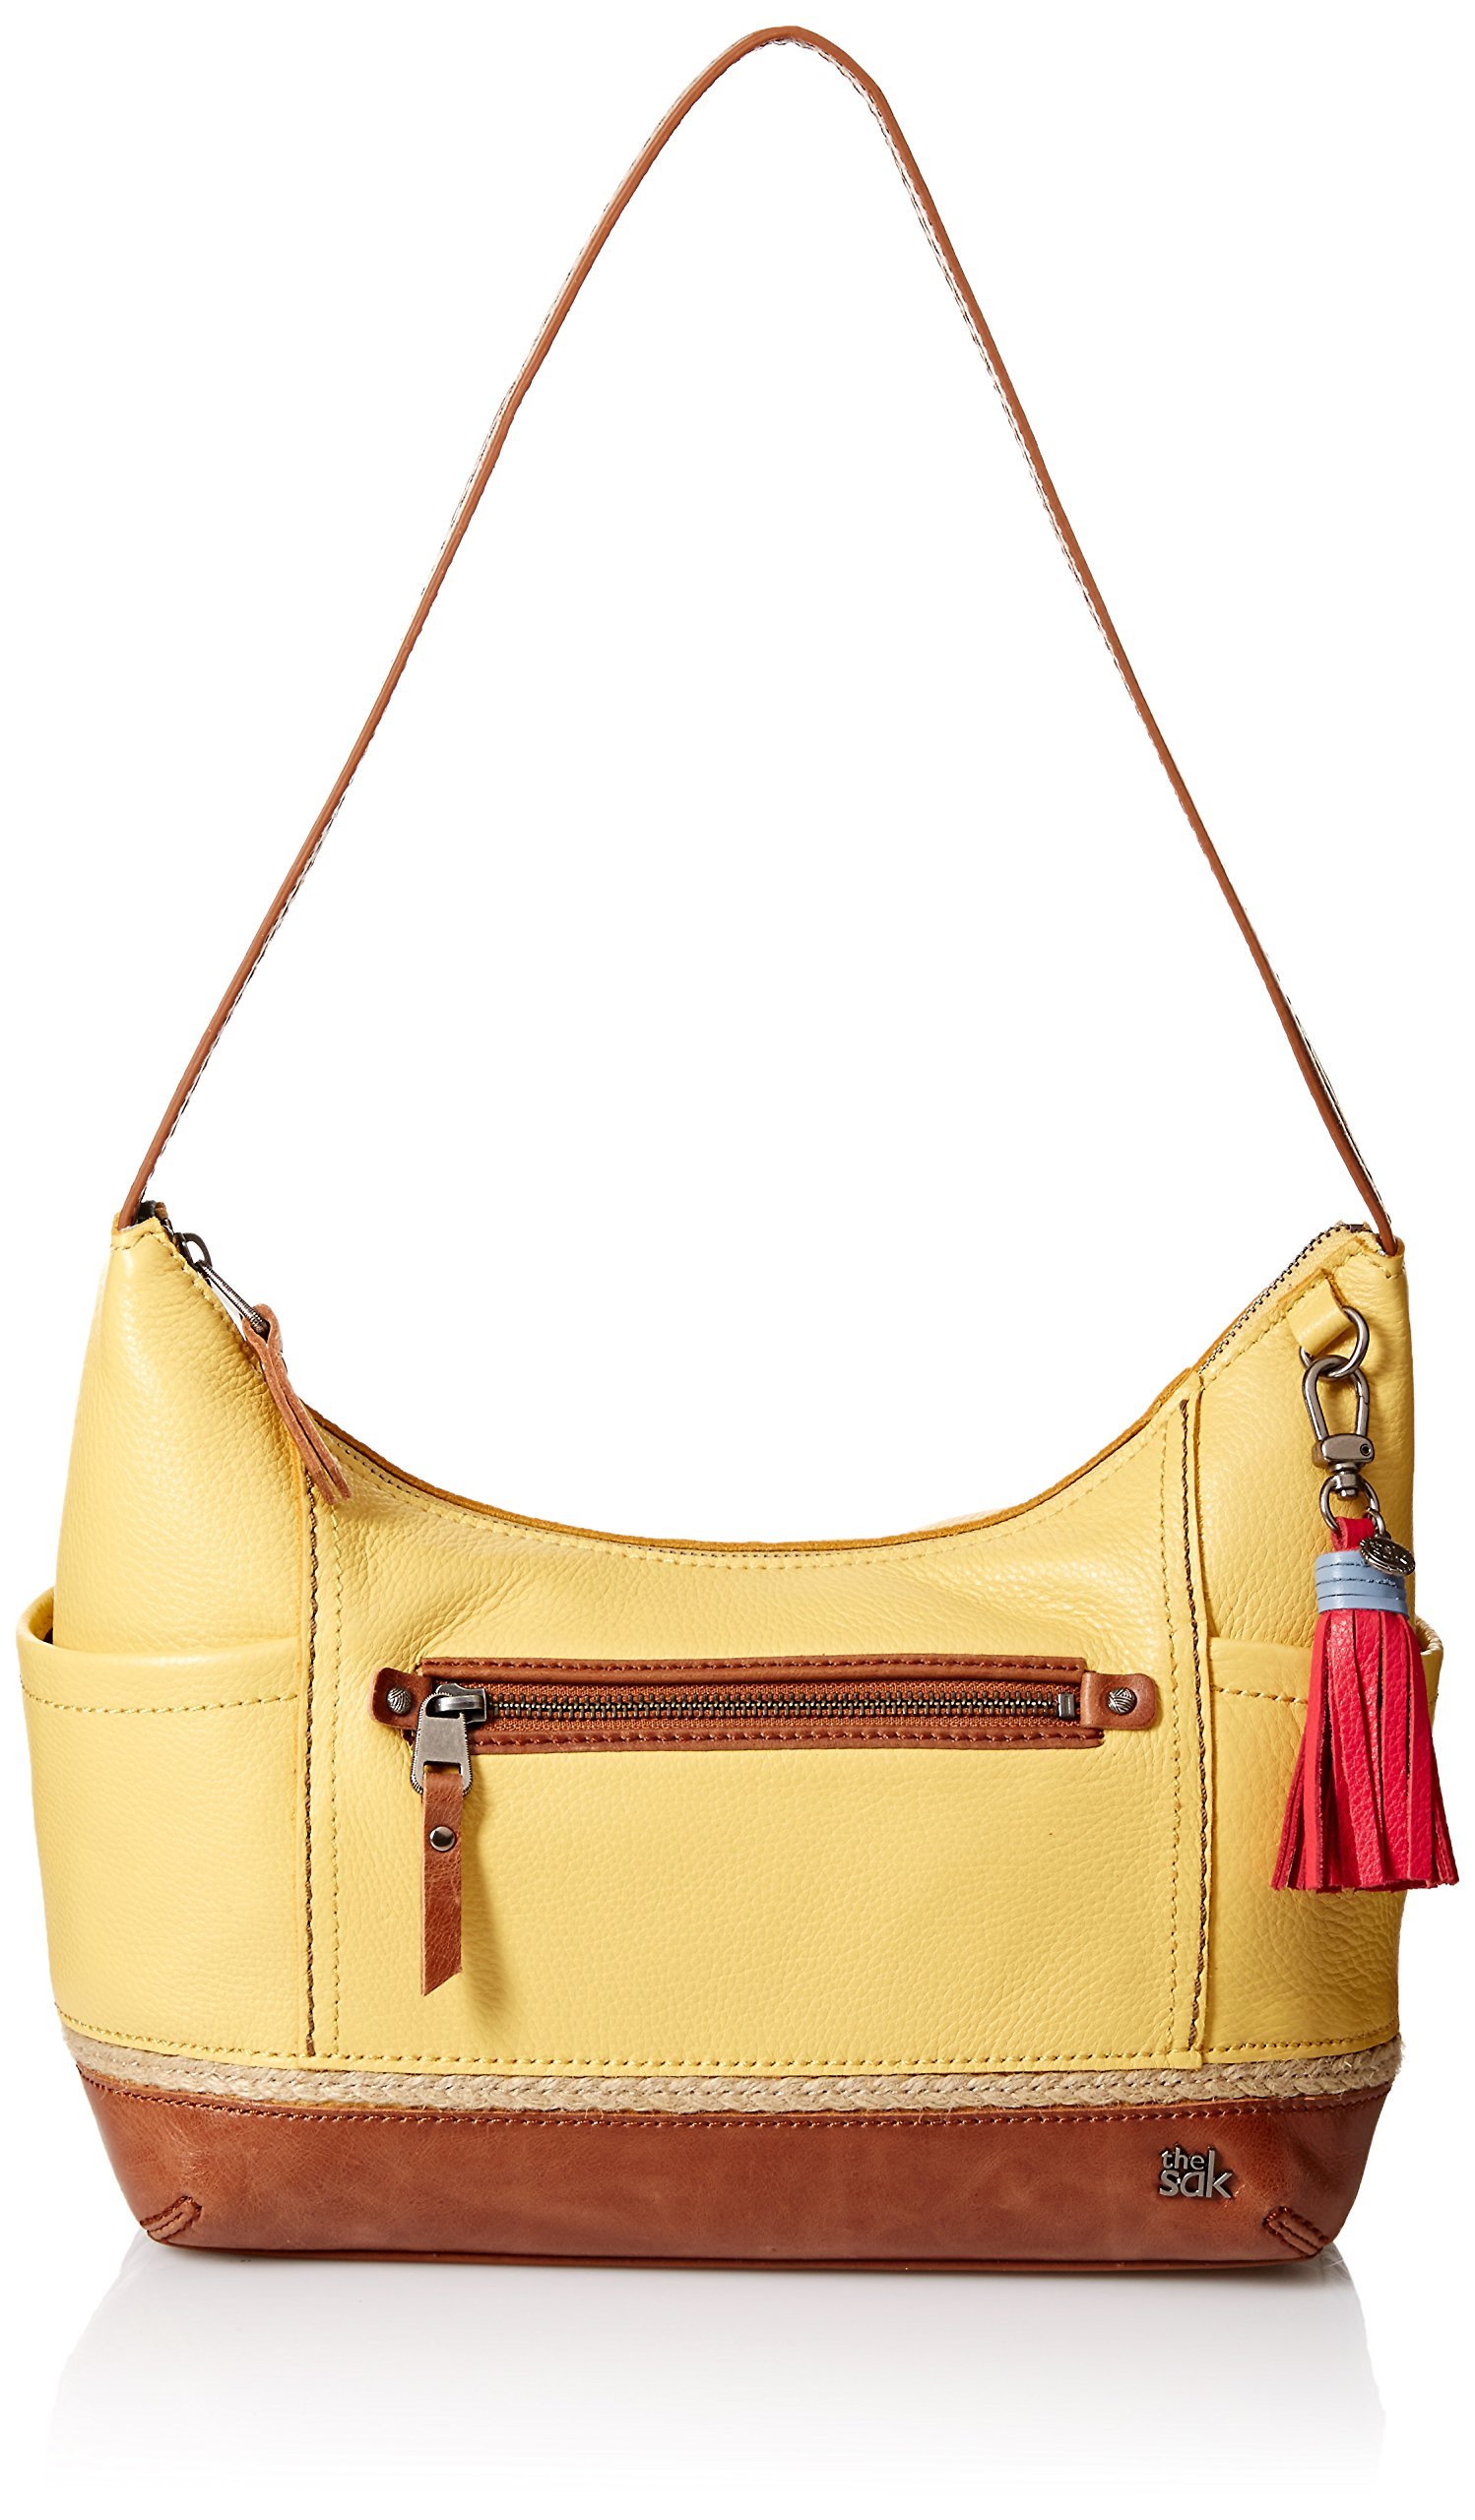 The Sak Kendra Hobo Bag, Sunlight Espadrille